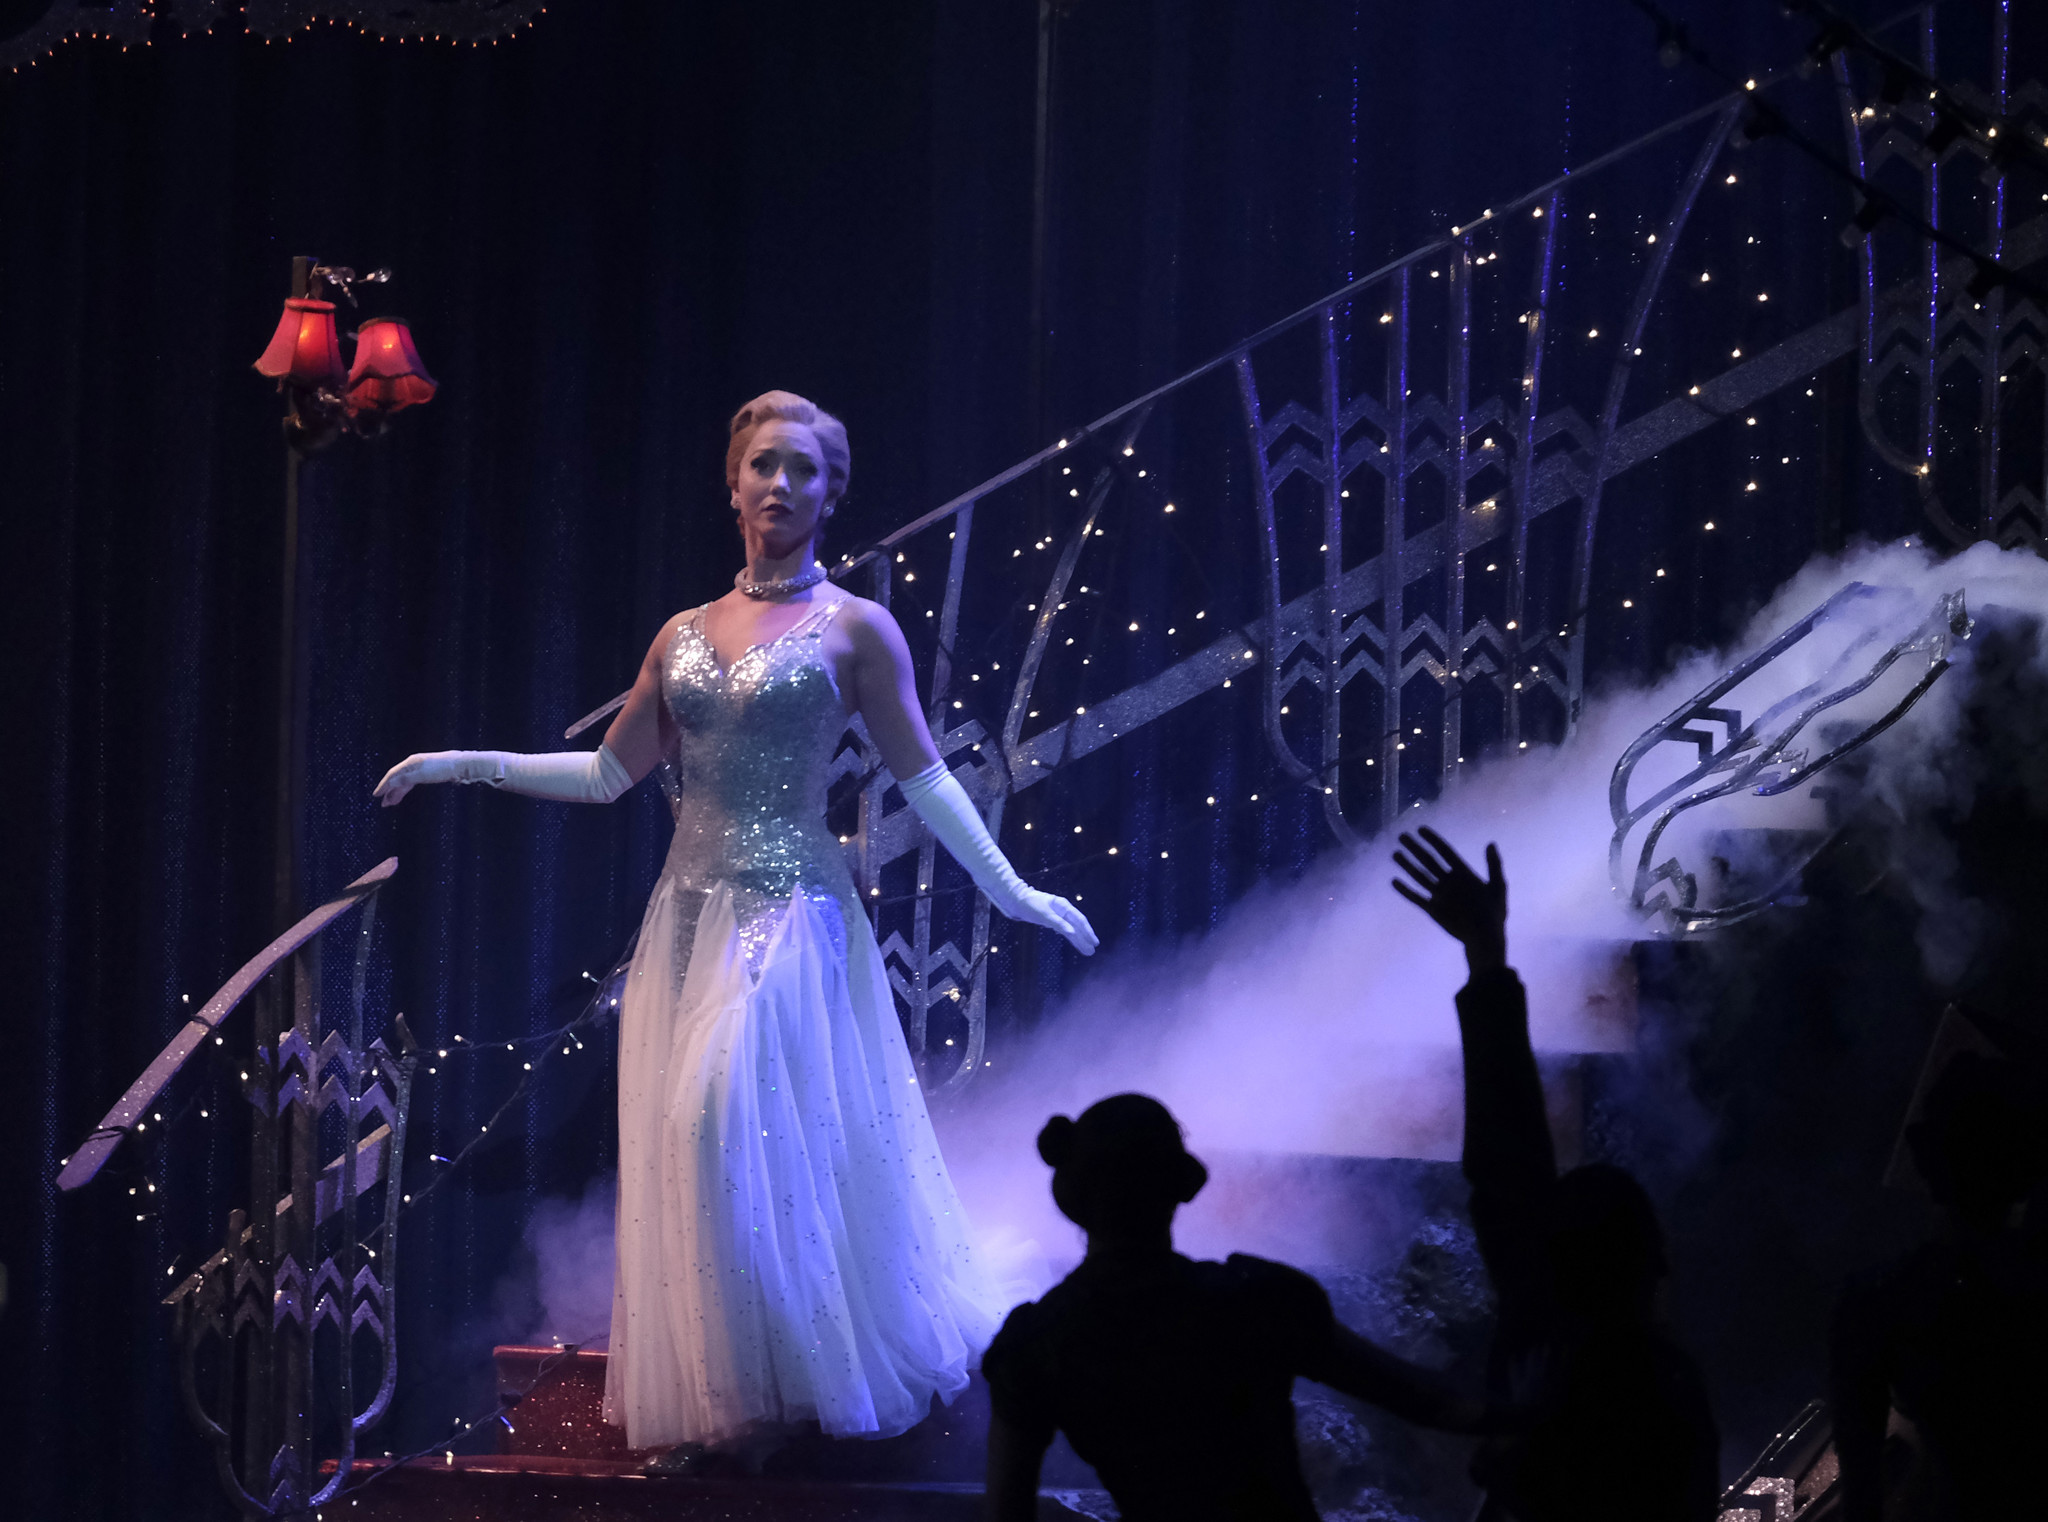 Los Angeles, CA FEBRAURY 6, 2019: Ashley Shaw dancing the part of Cinderella comes down the stair